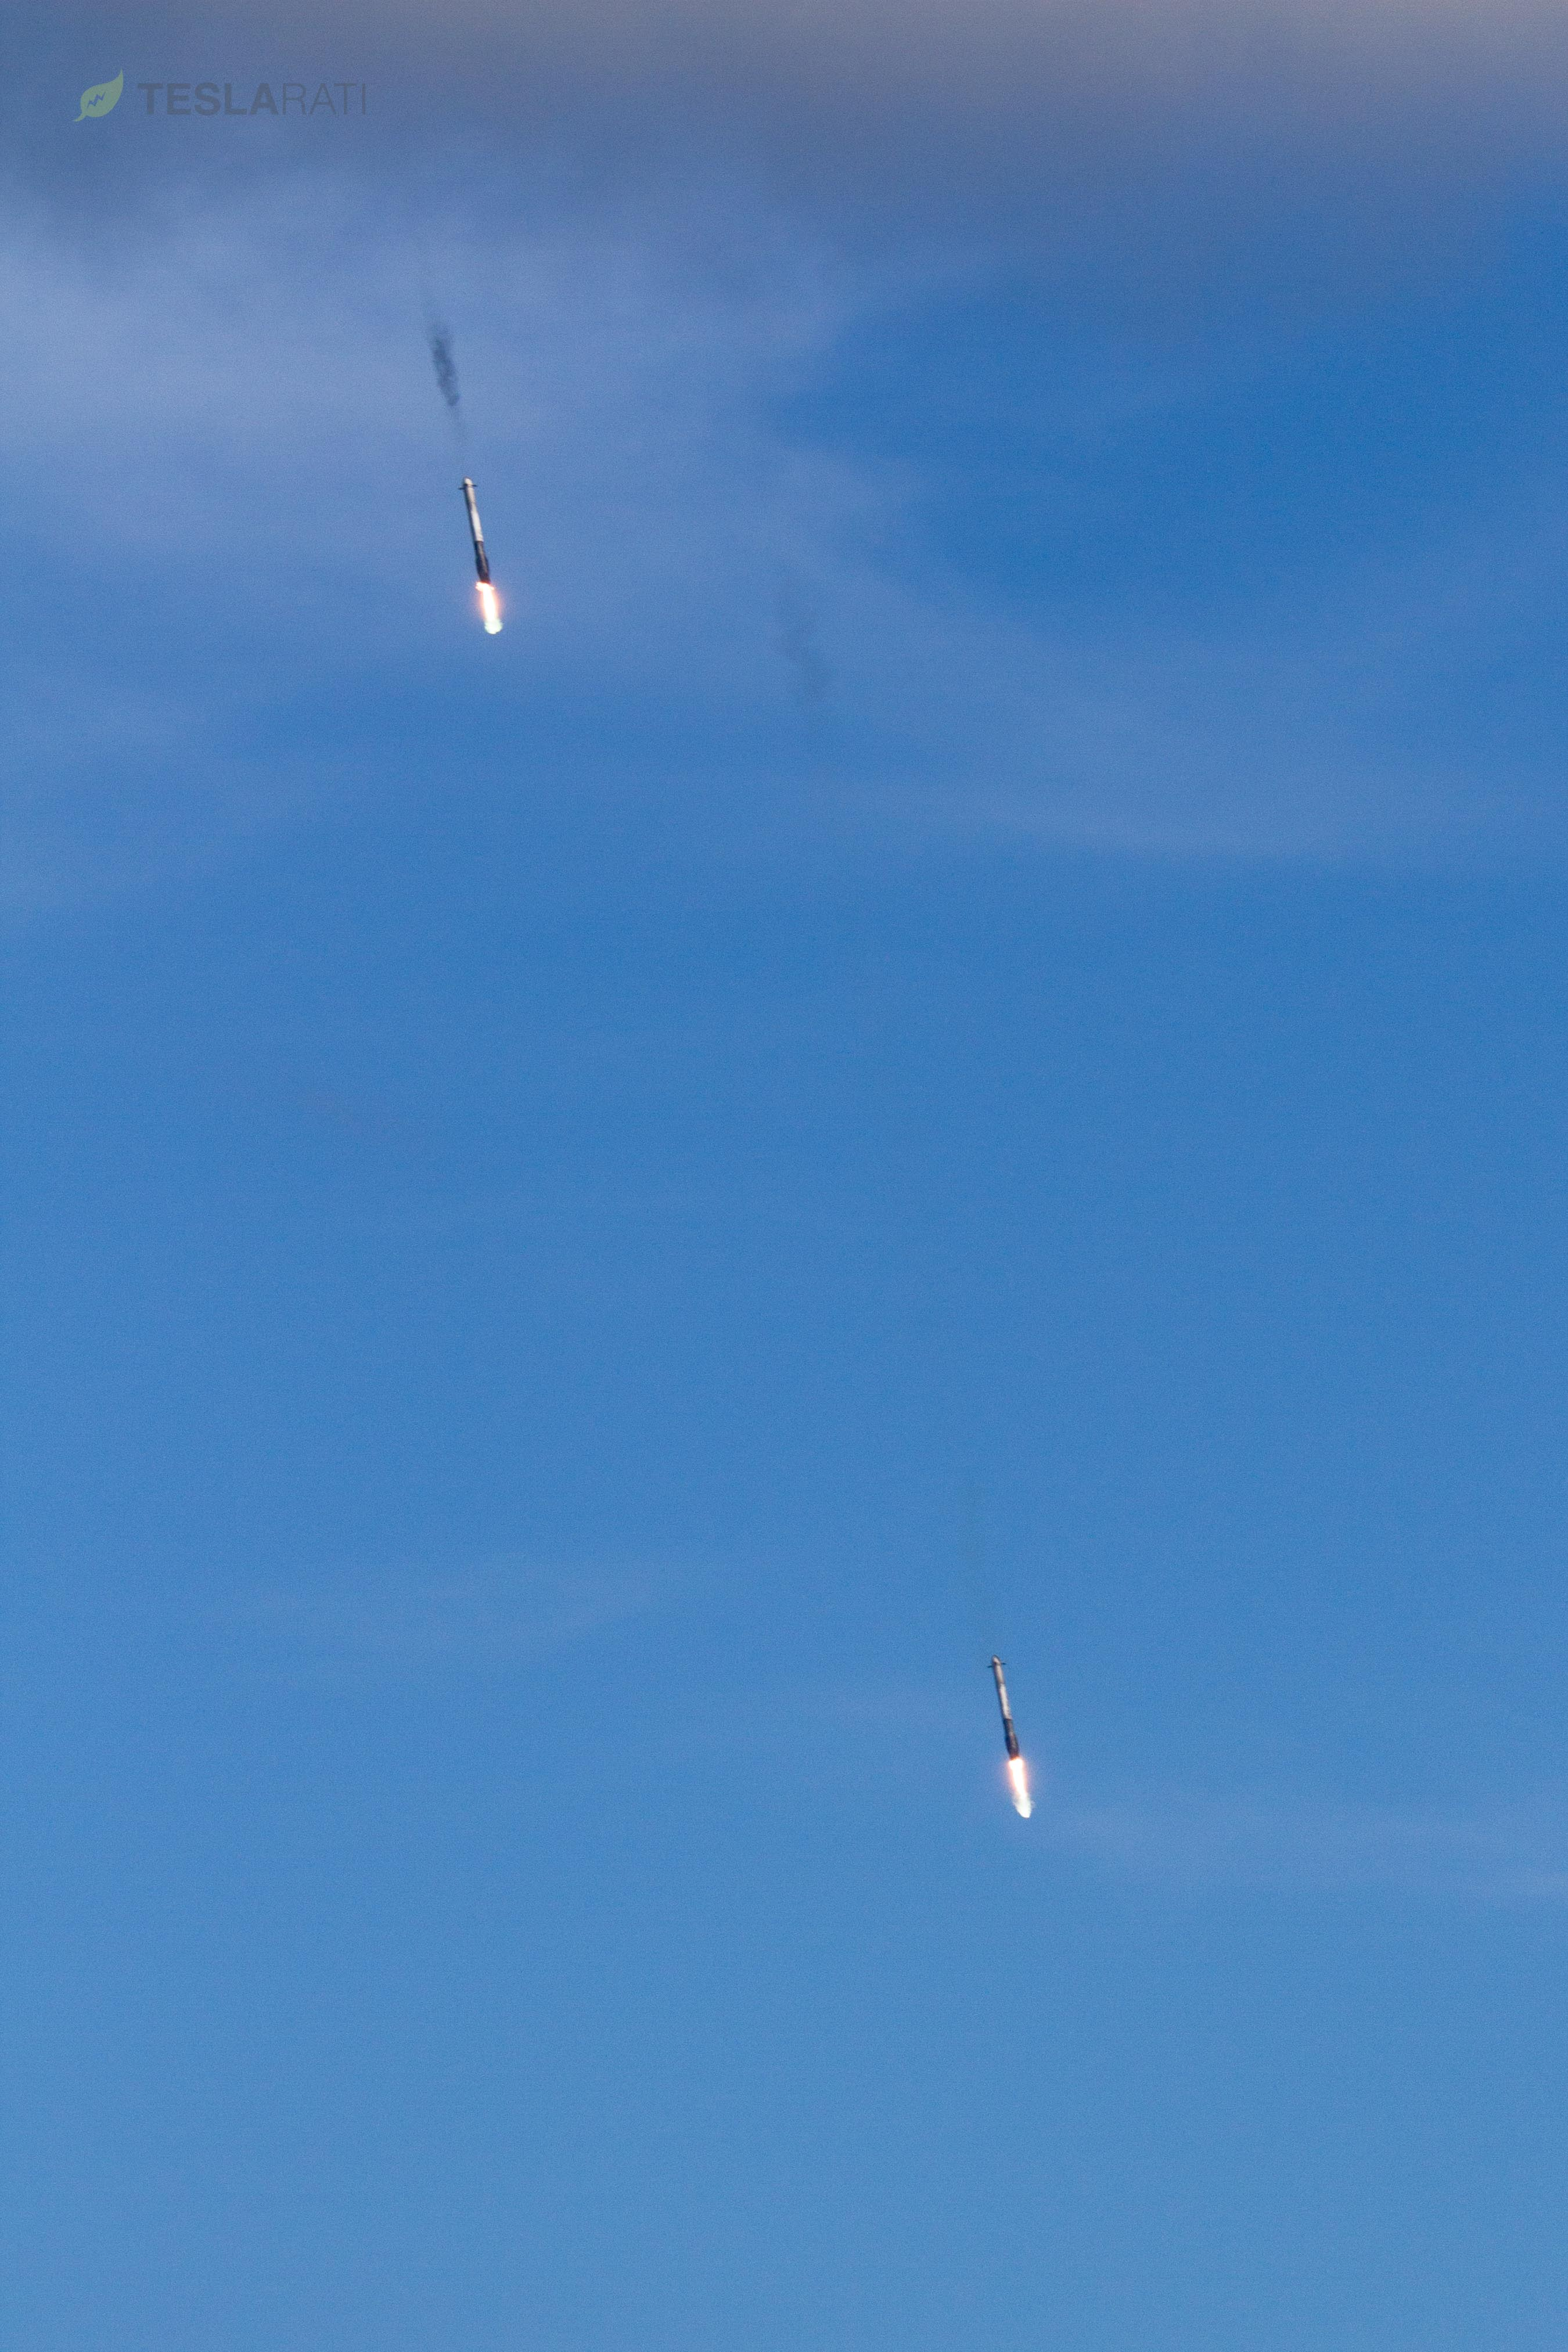 FH side booster reentry 1 (Tom Cross)